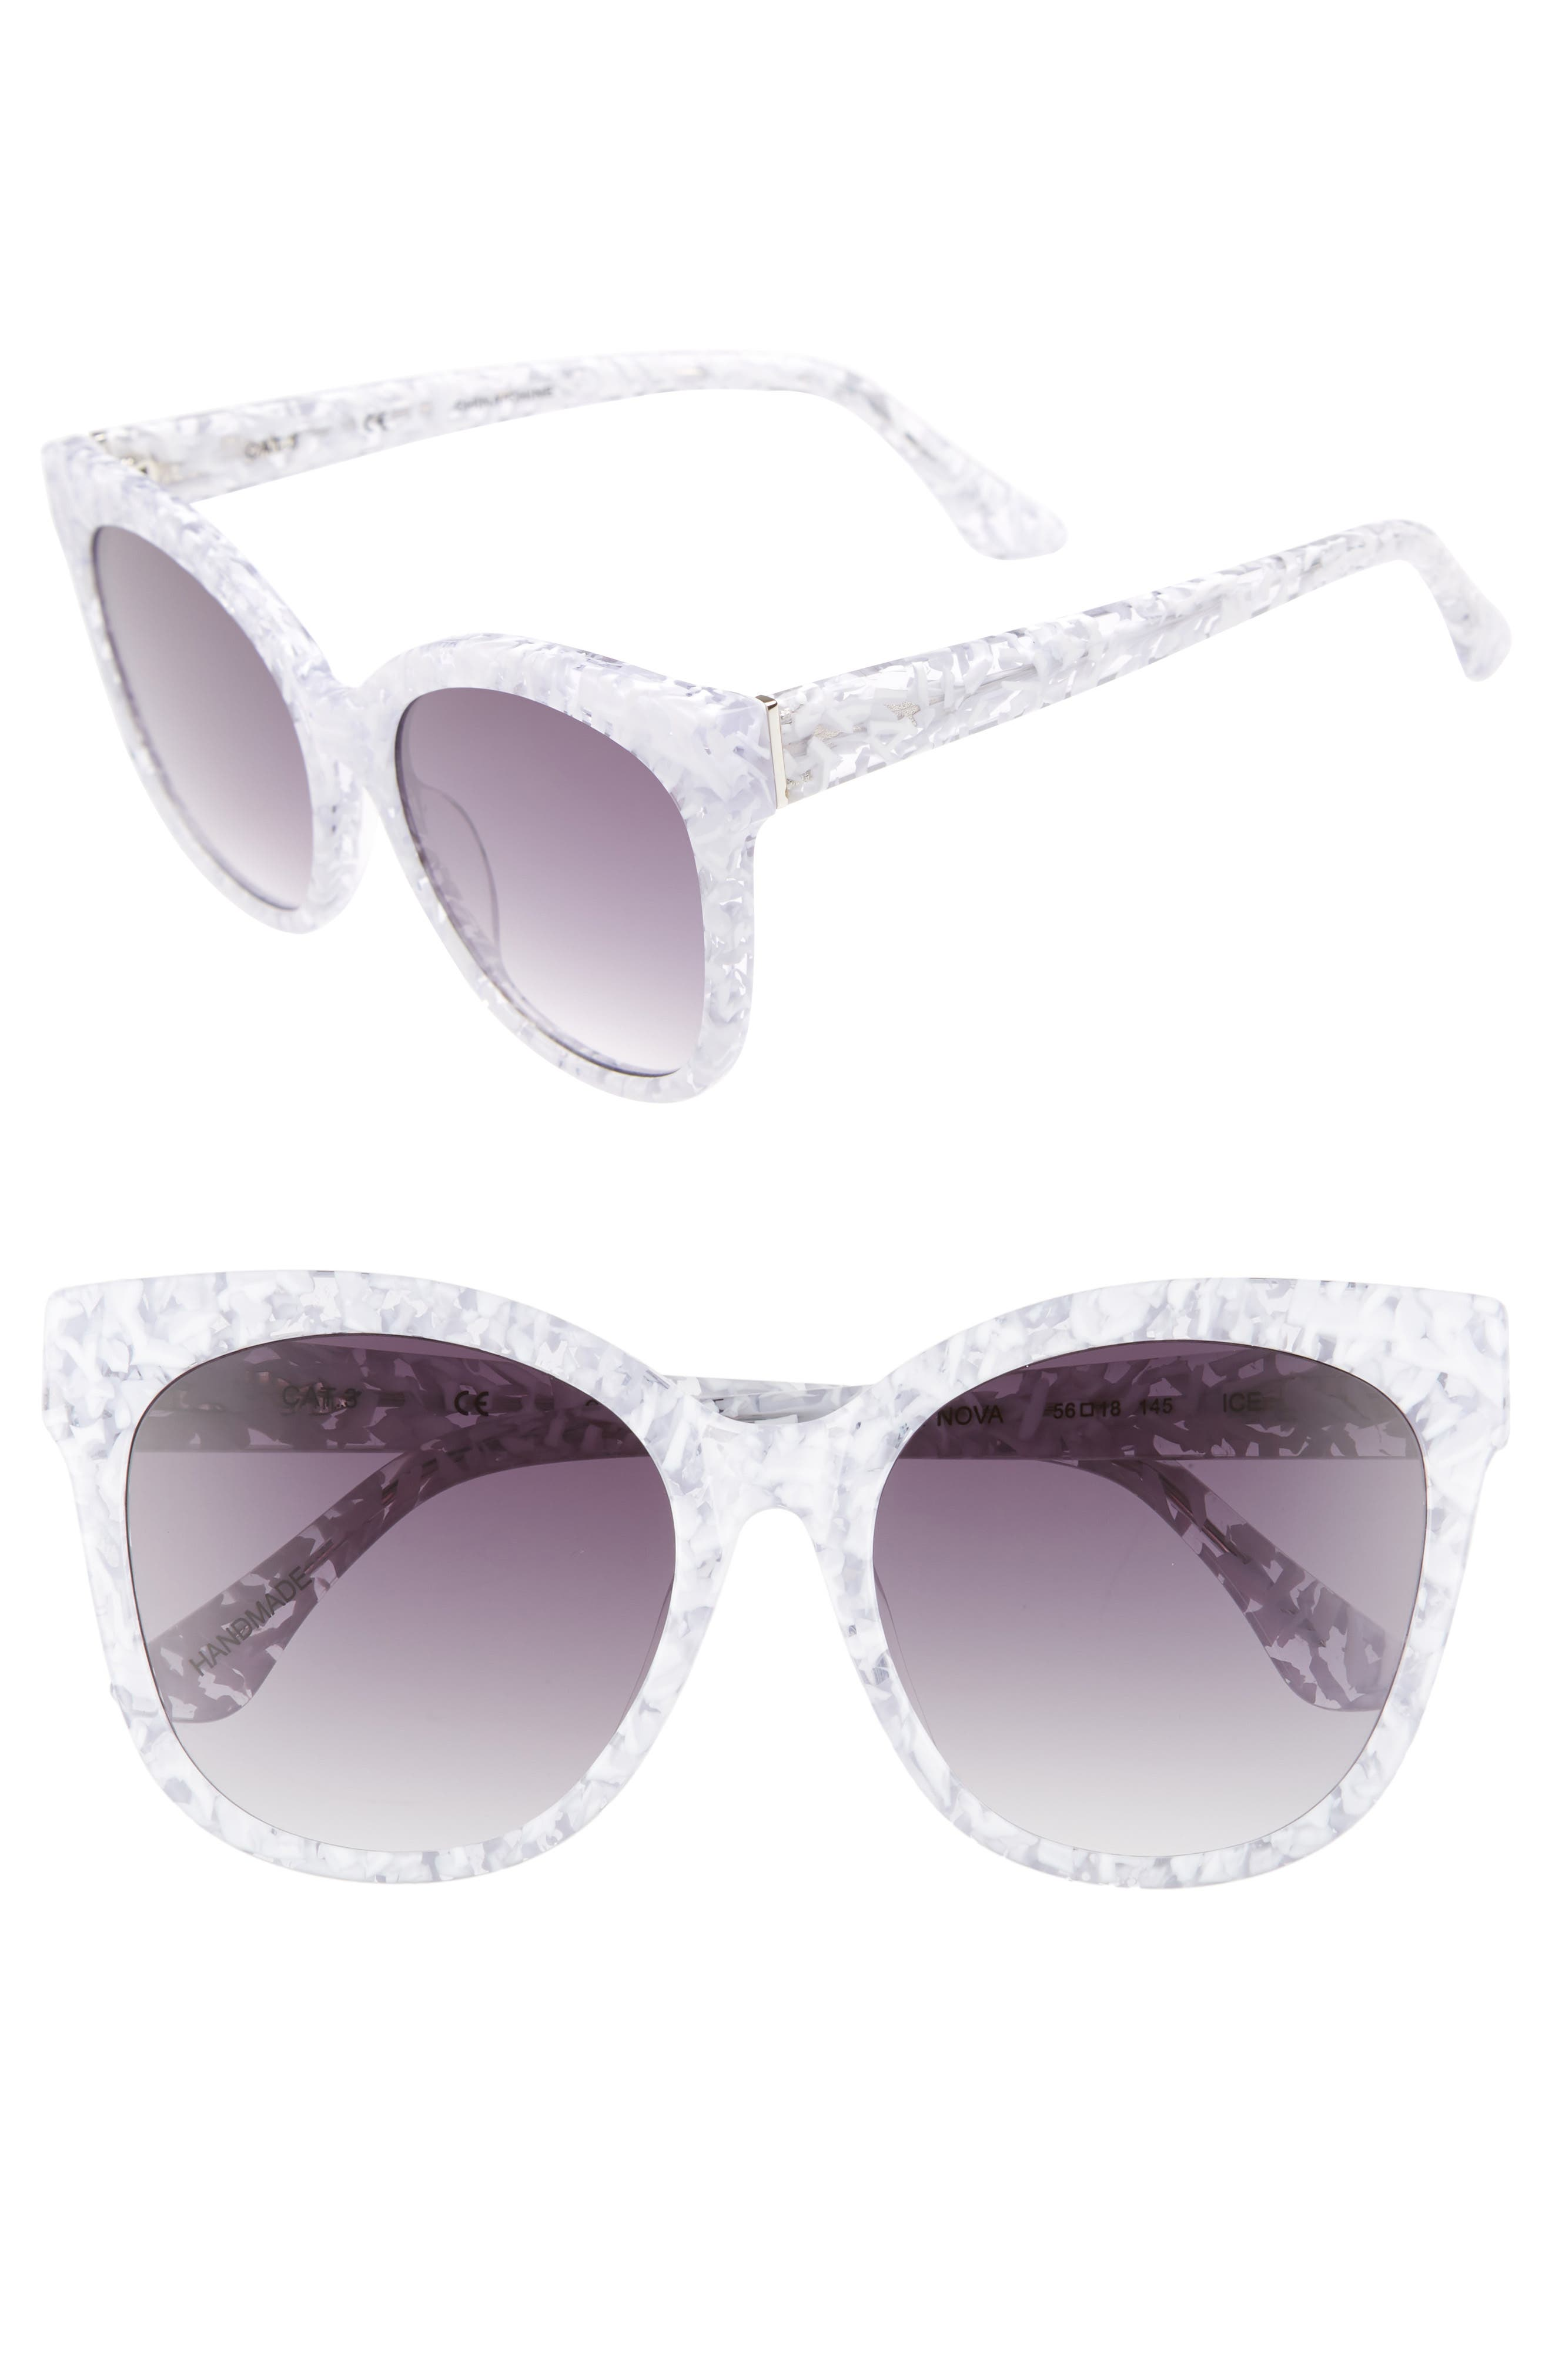 Bossa Nova 57mm Cat Eye Sunglasses,                             Main thumbnail 1, color,                             White Speckle